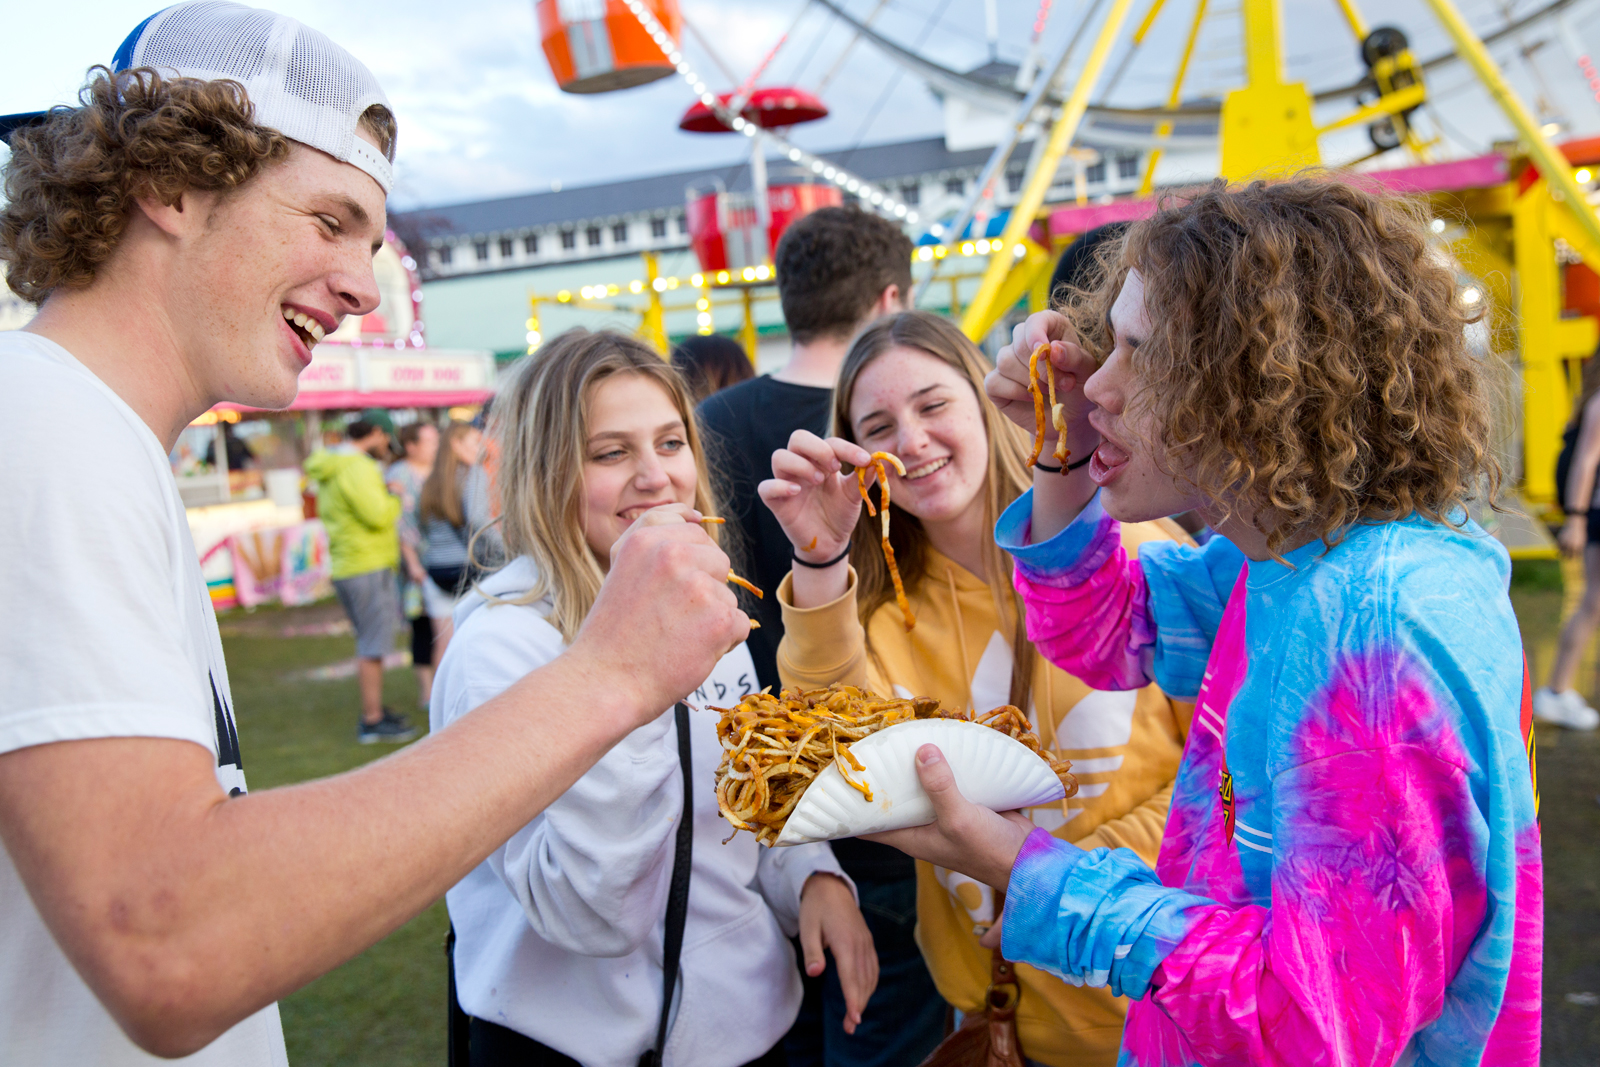 Photo by Bess Bird. Teenagers share in heaping portions of french fries.